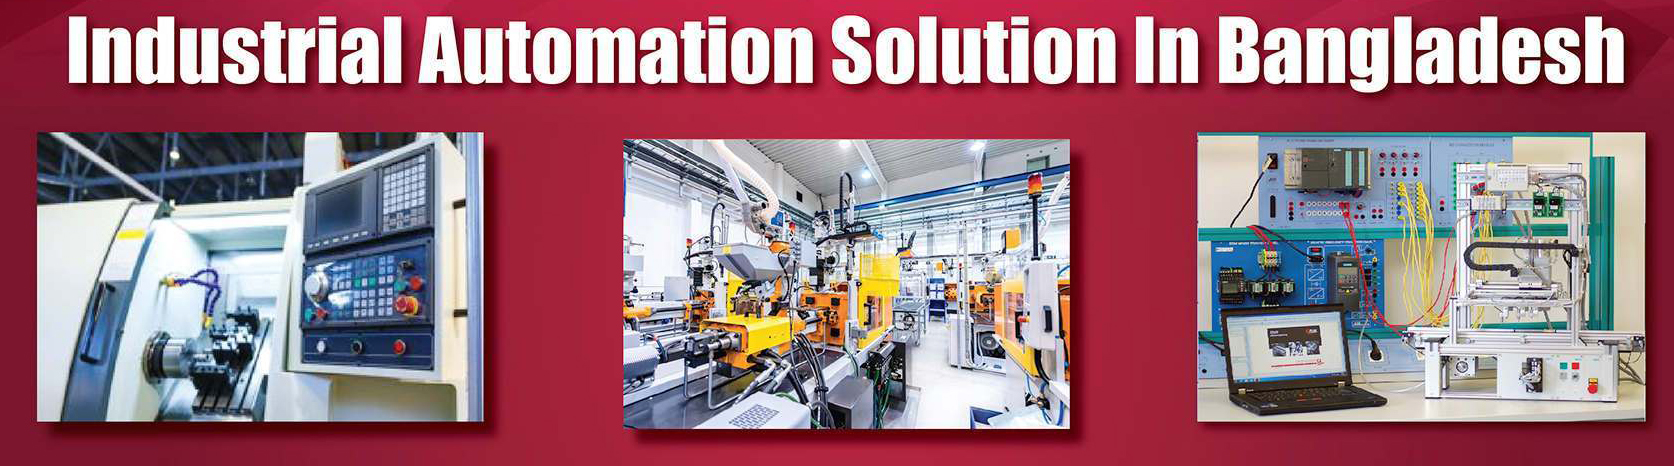 Industrial Automation System in Bangladesh